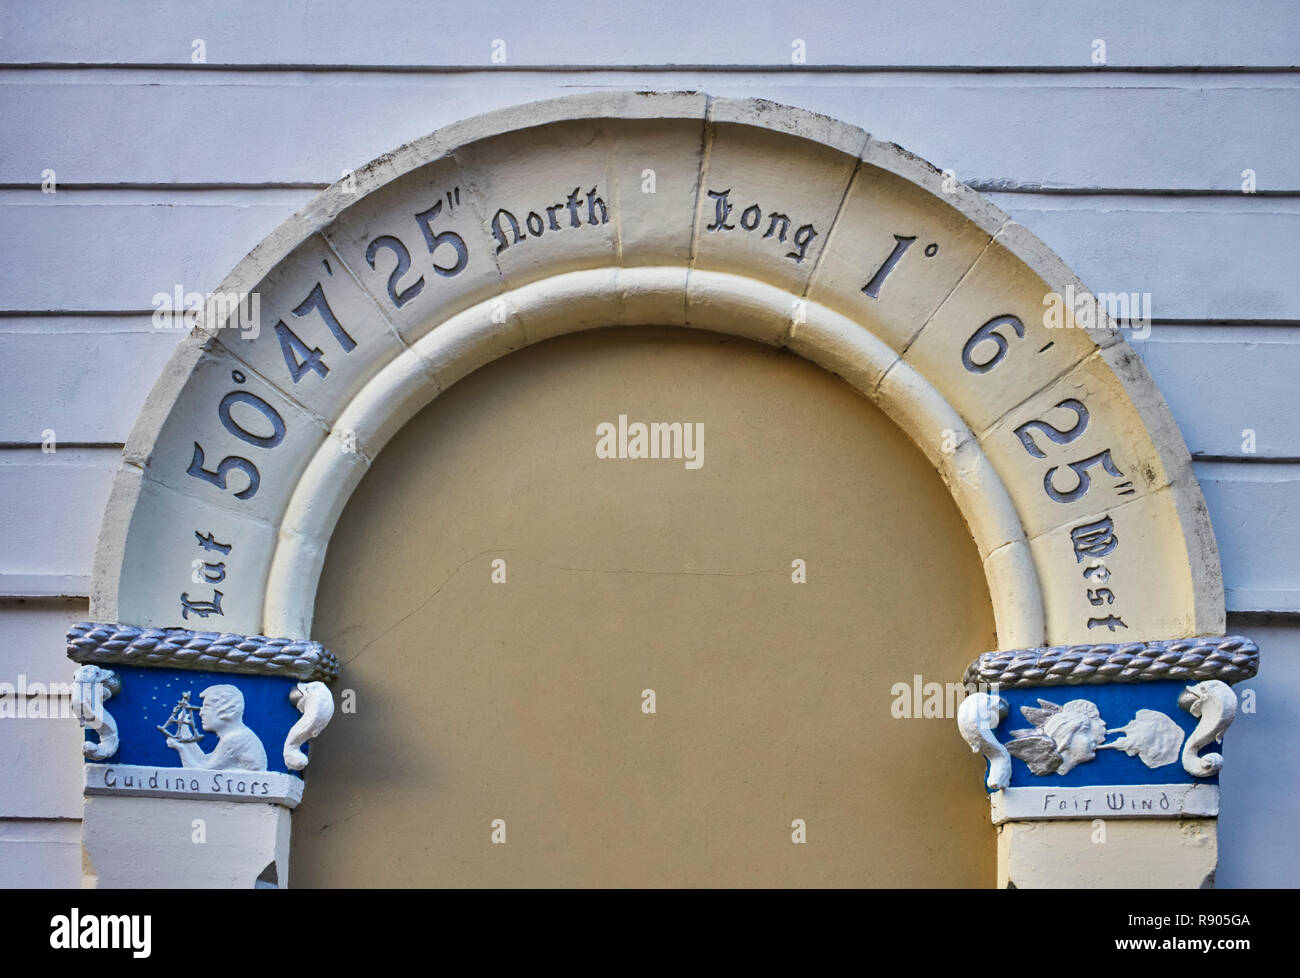 Door frame in the Point area of Portsmouth showing position with guiding stars and fair wind motifs. - Stock Image